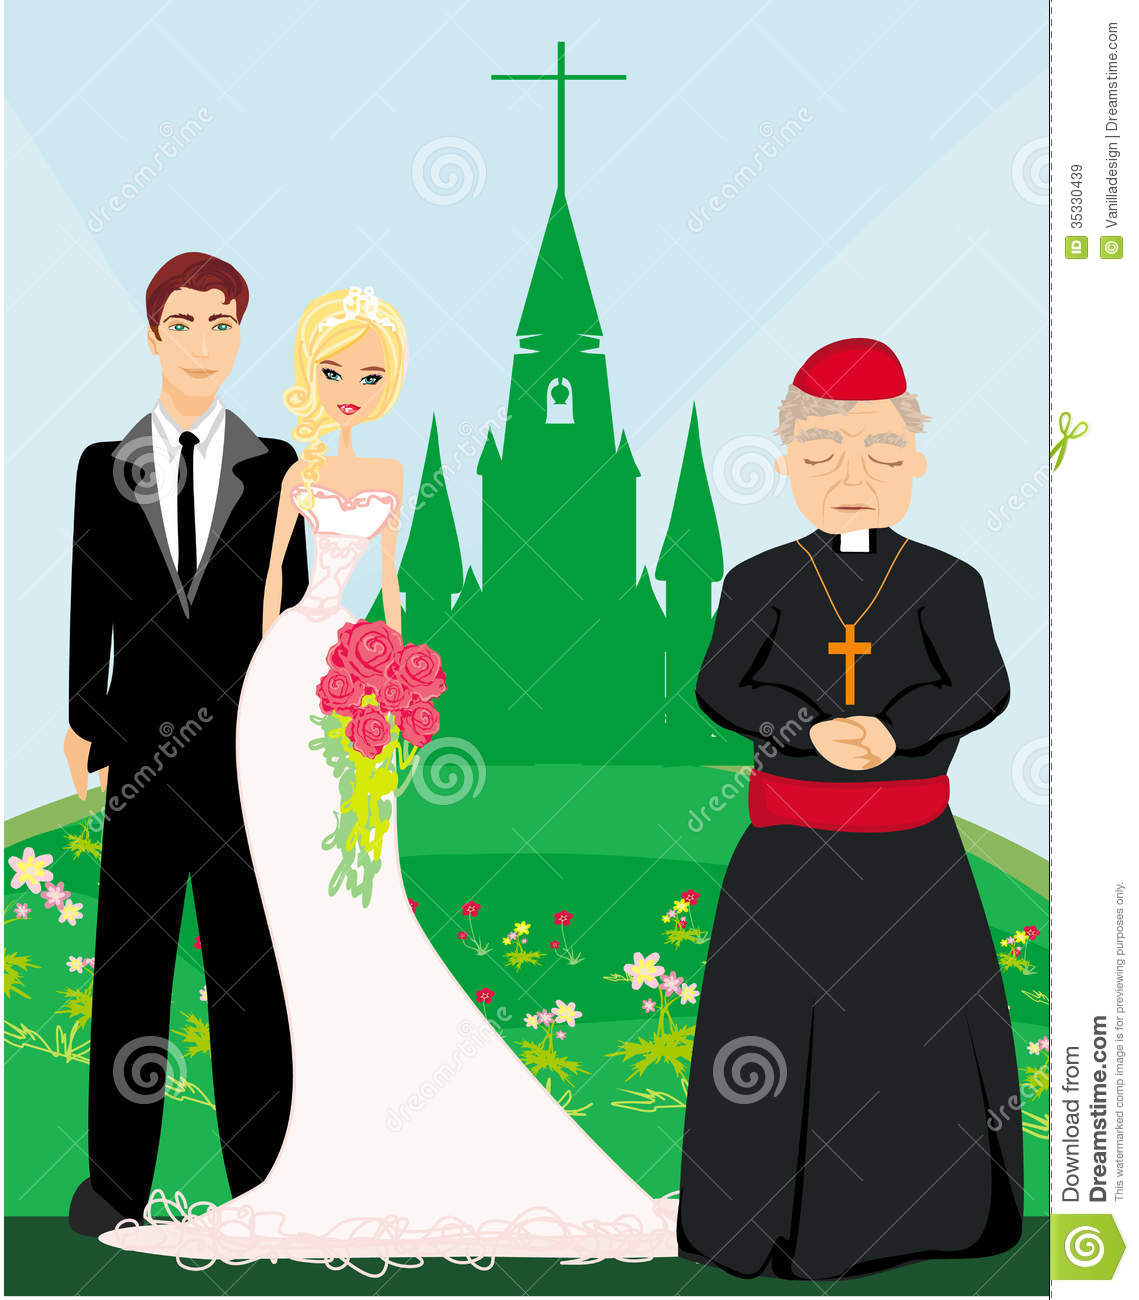 Church Wedding Clipart.